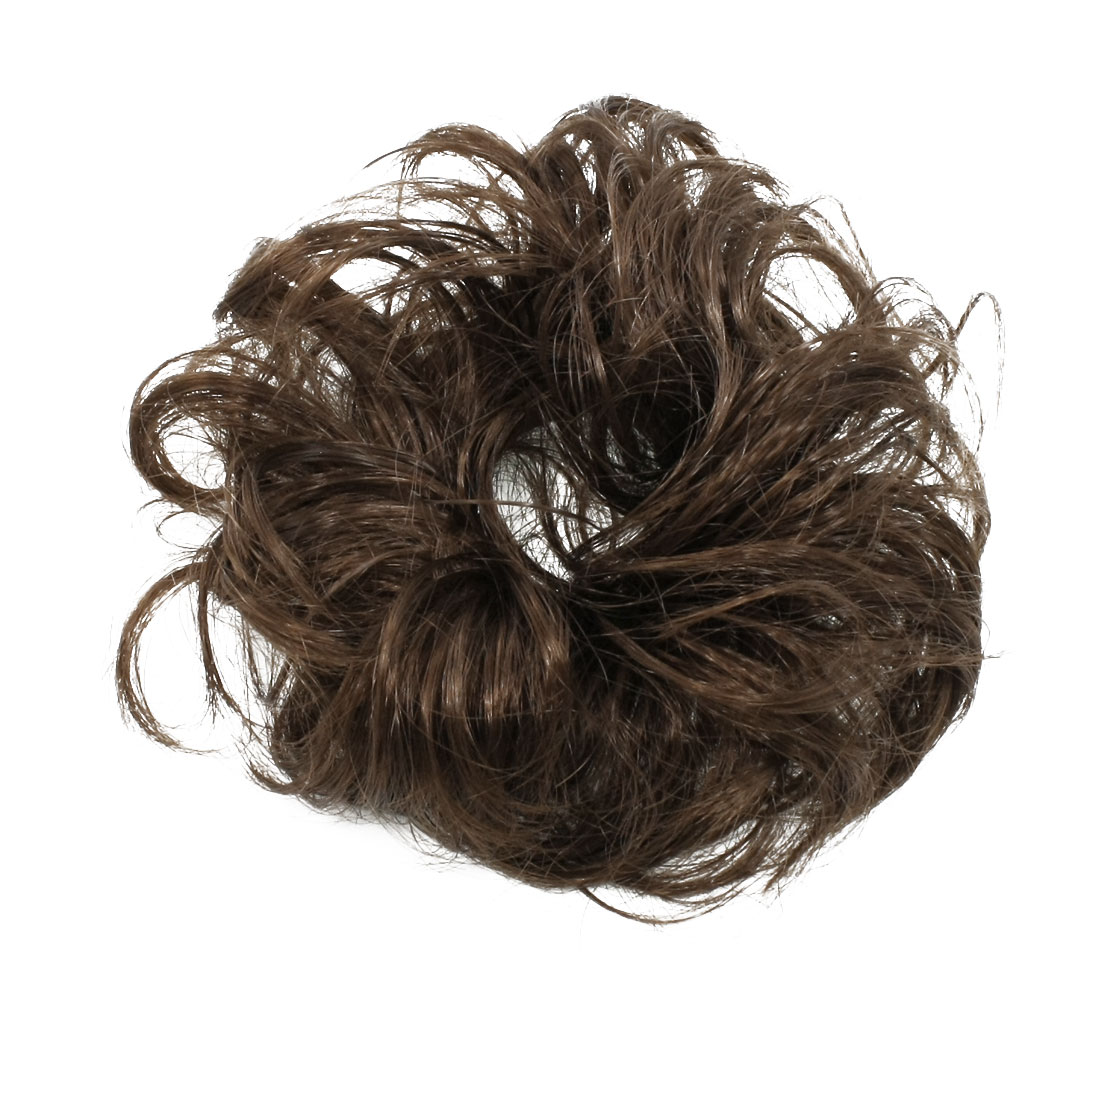 Medium Dark Brown Faux Hair Wedding Stretchy Band Curly Hairpiece Wig Bun